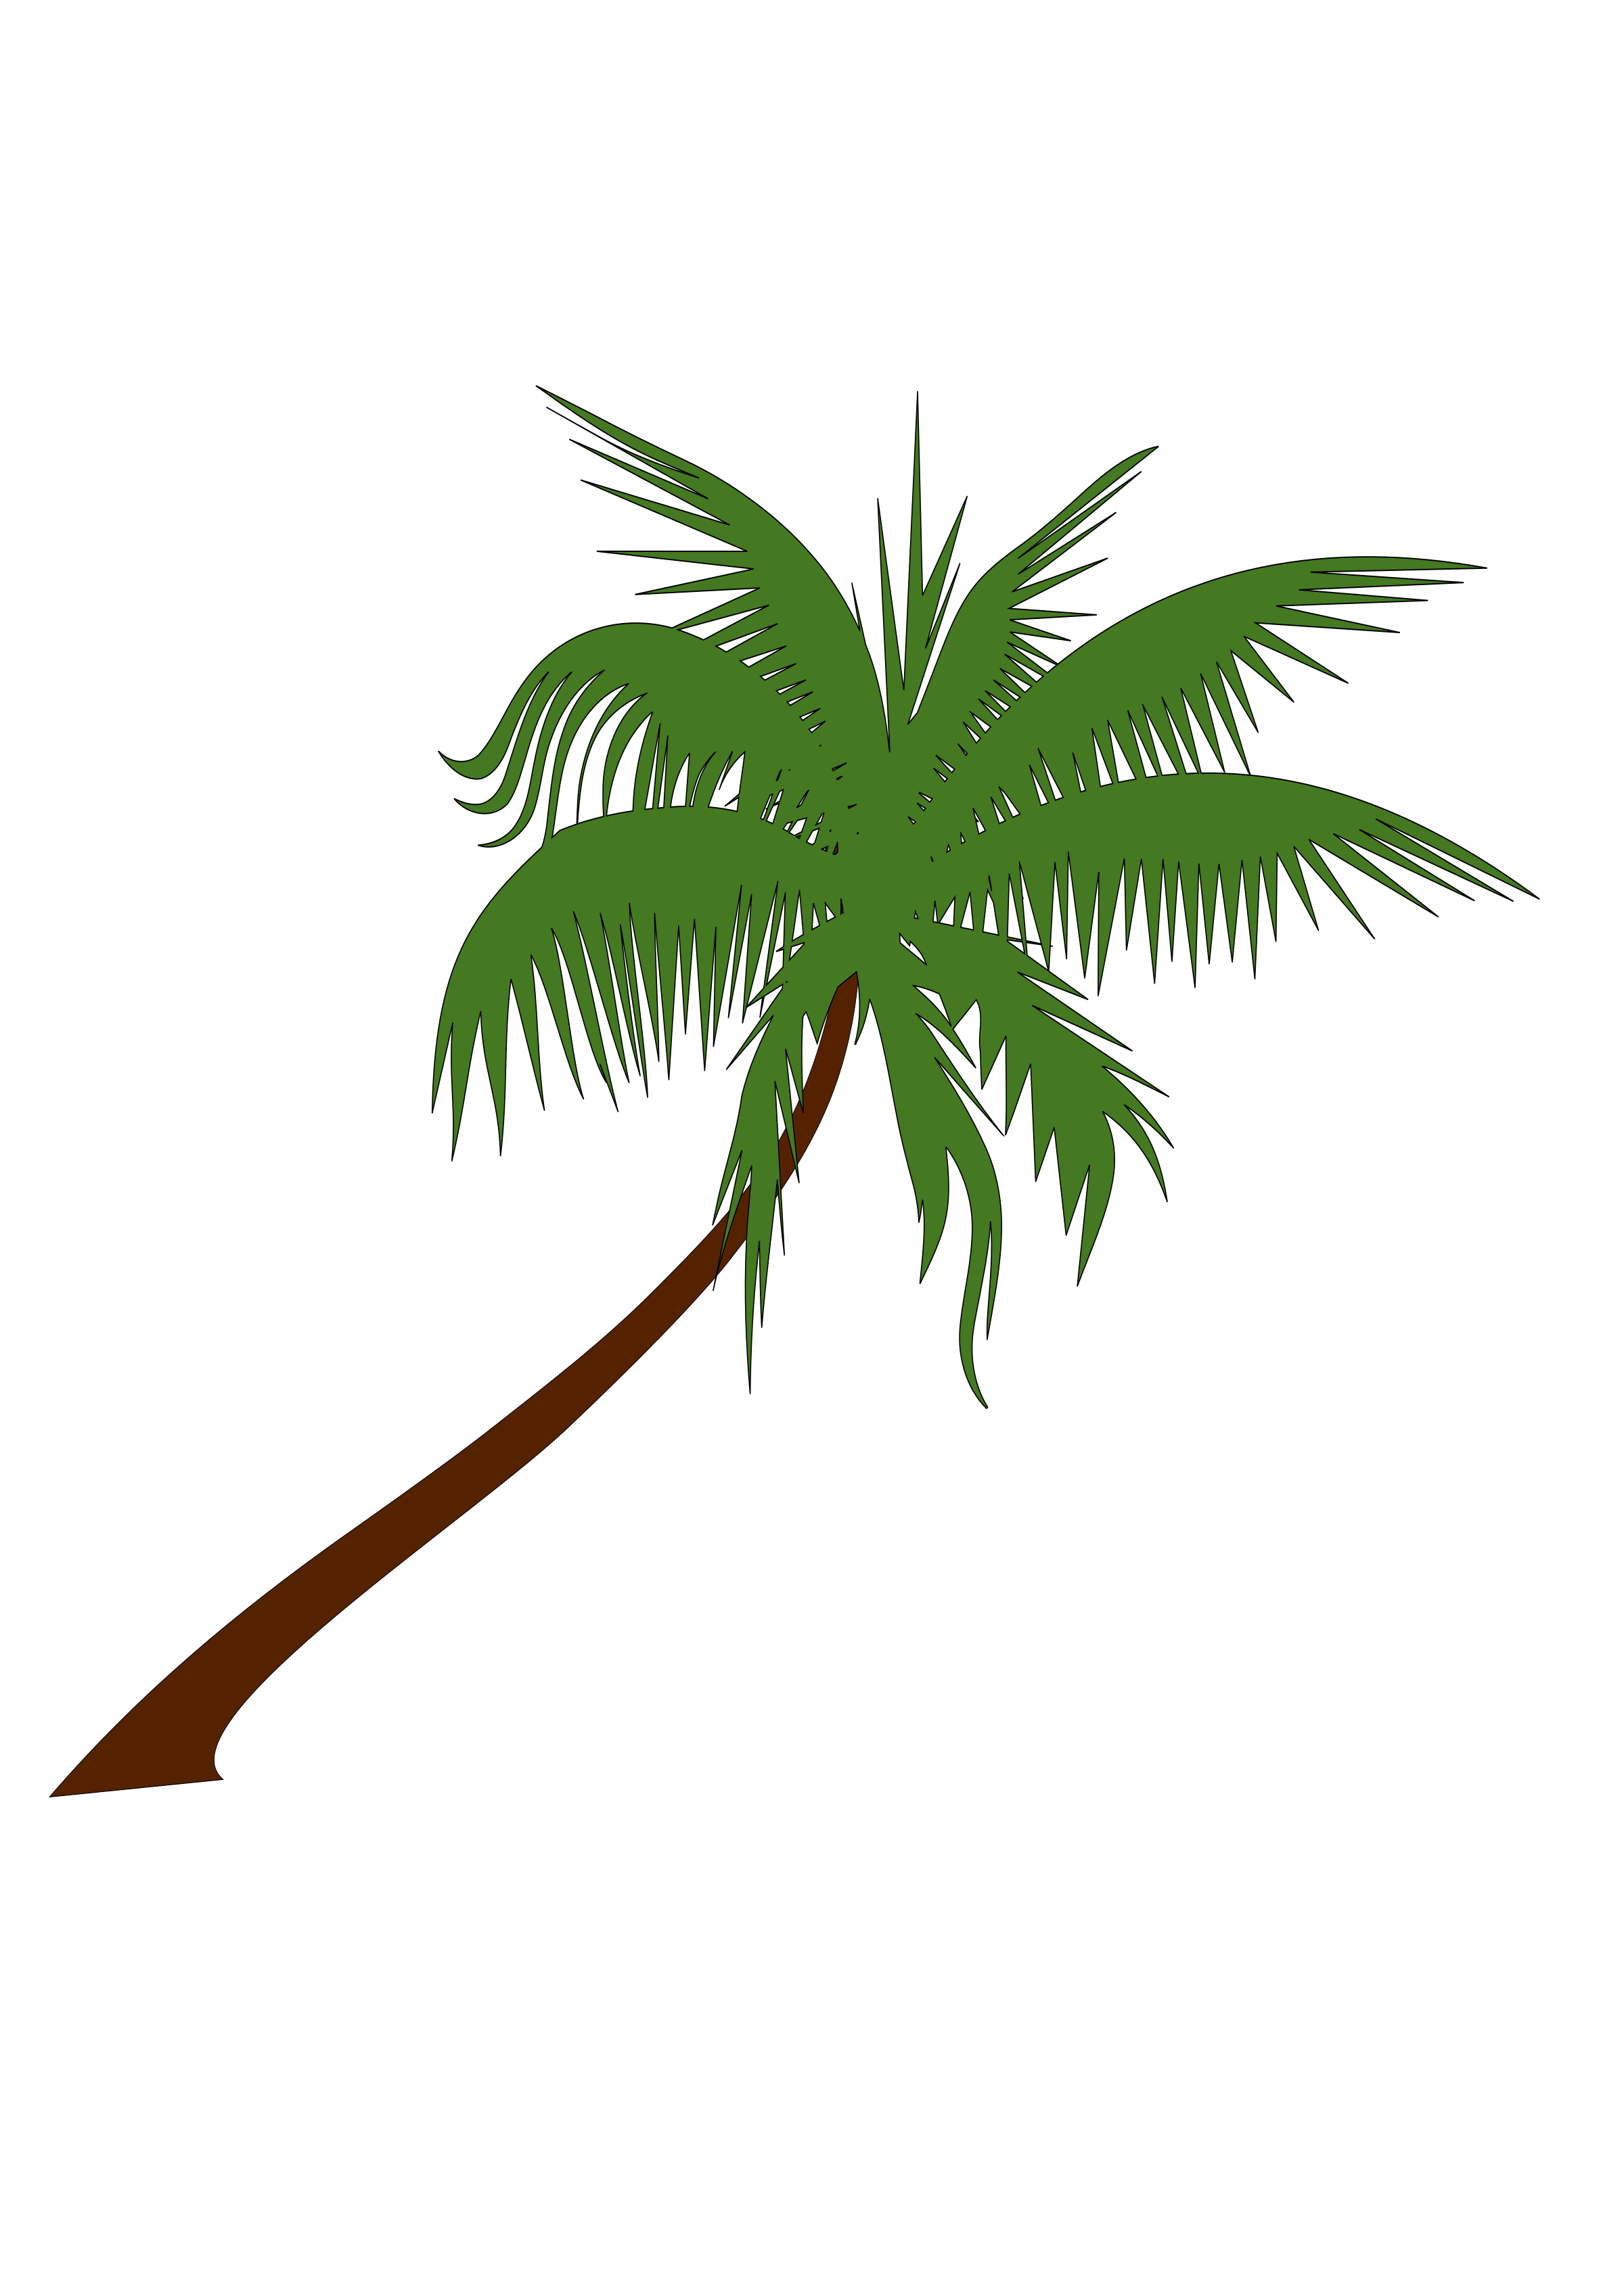 coconut tree png. Palm clipart pineapple